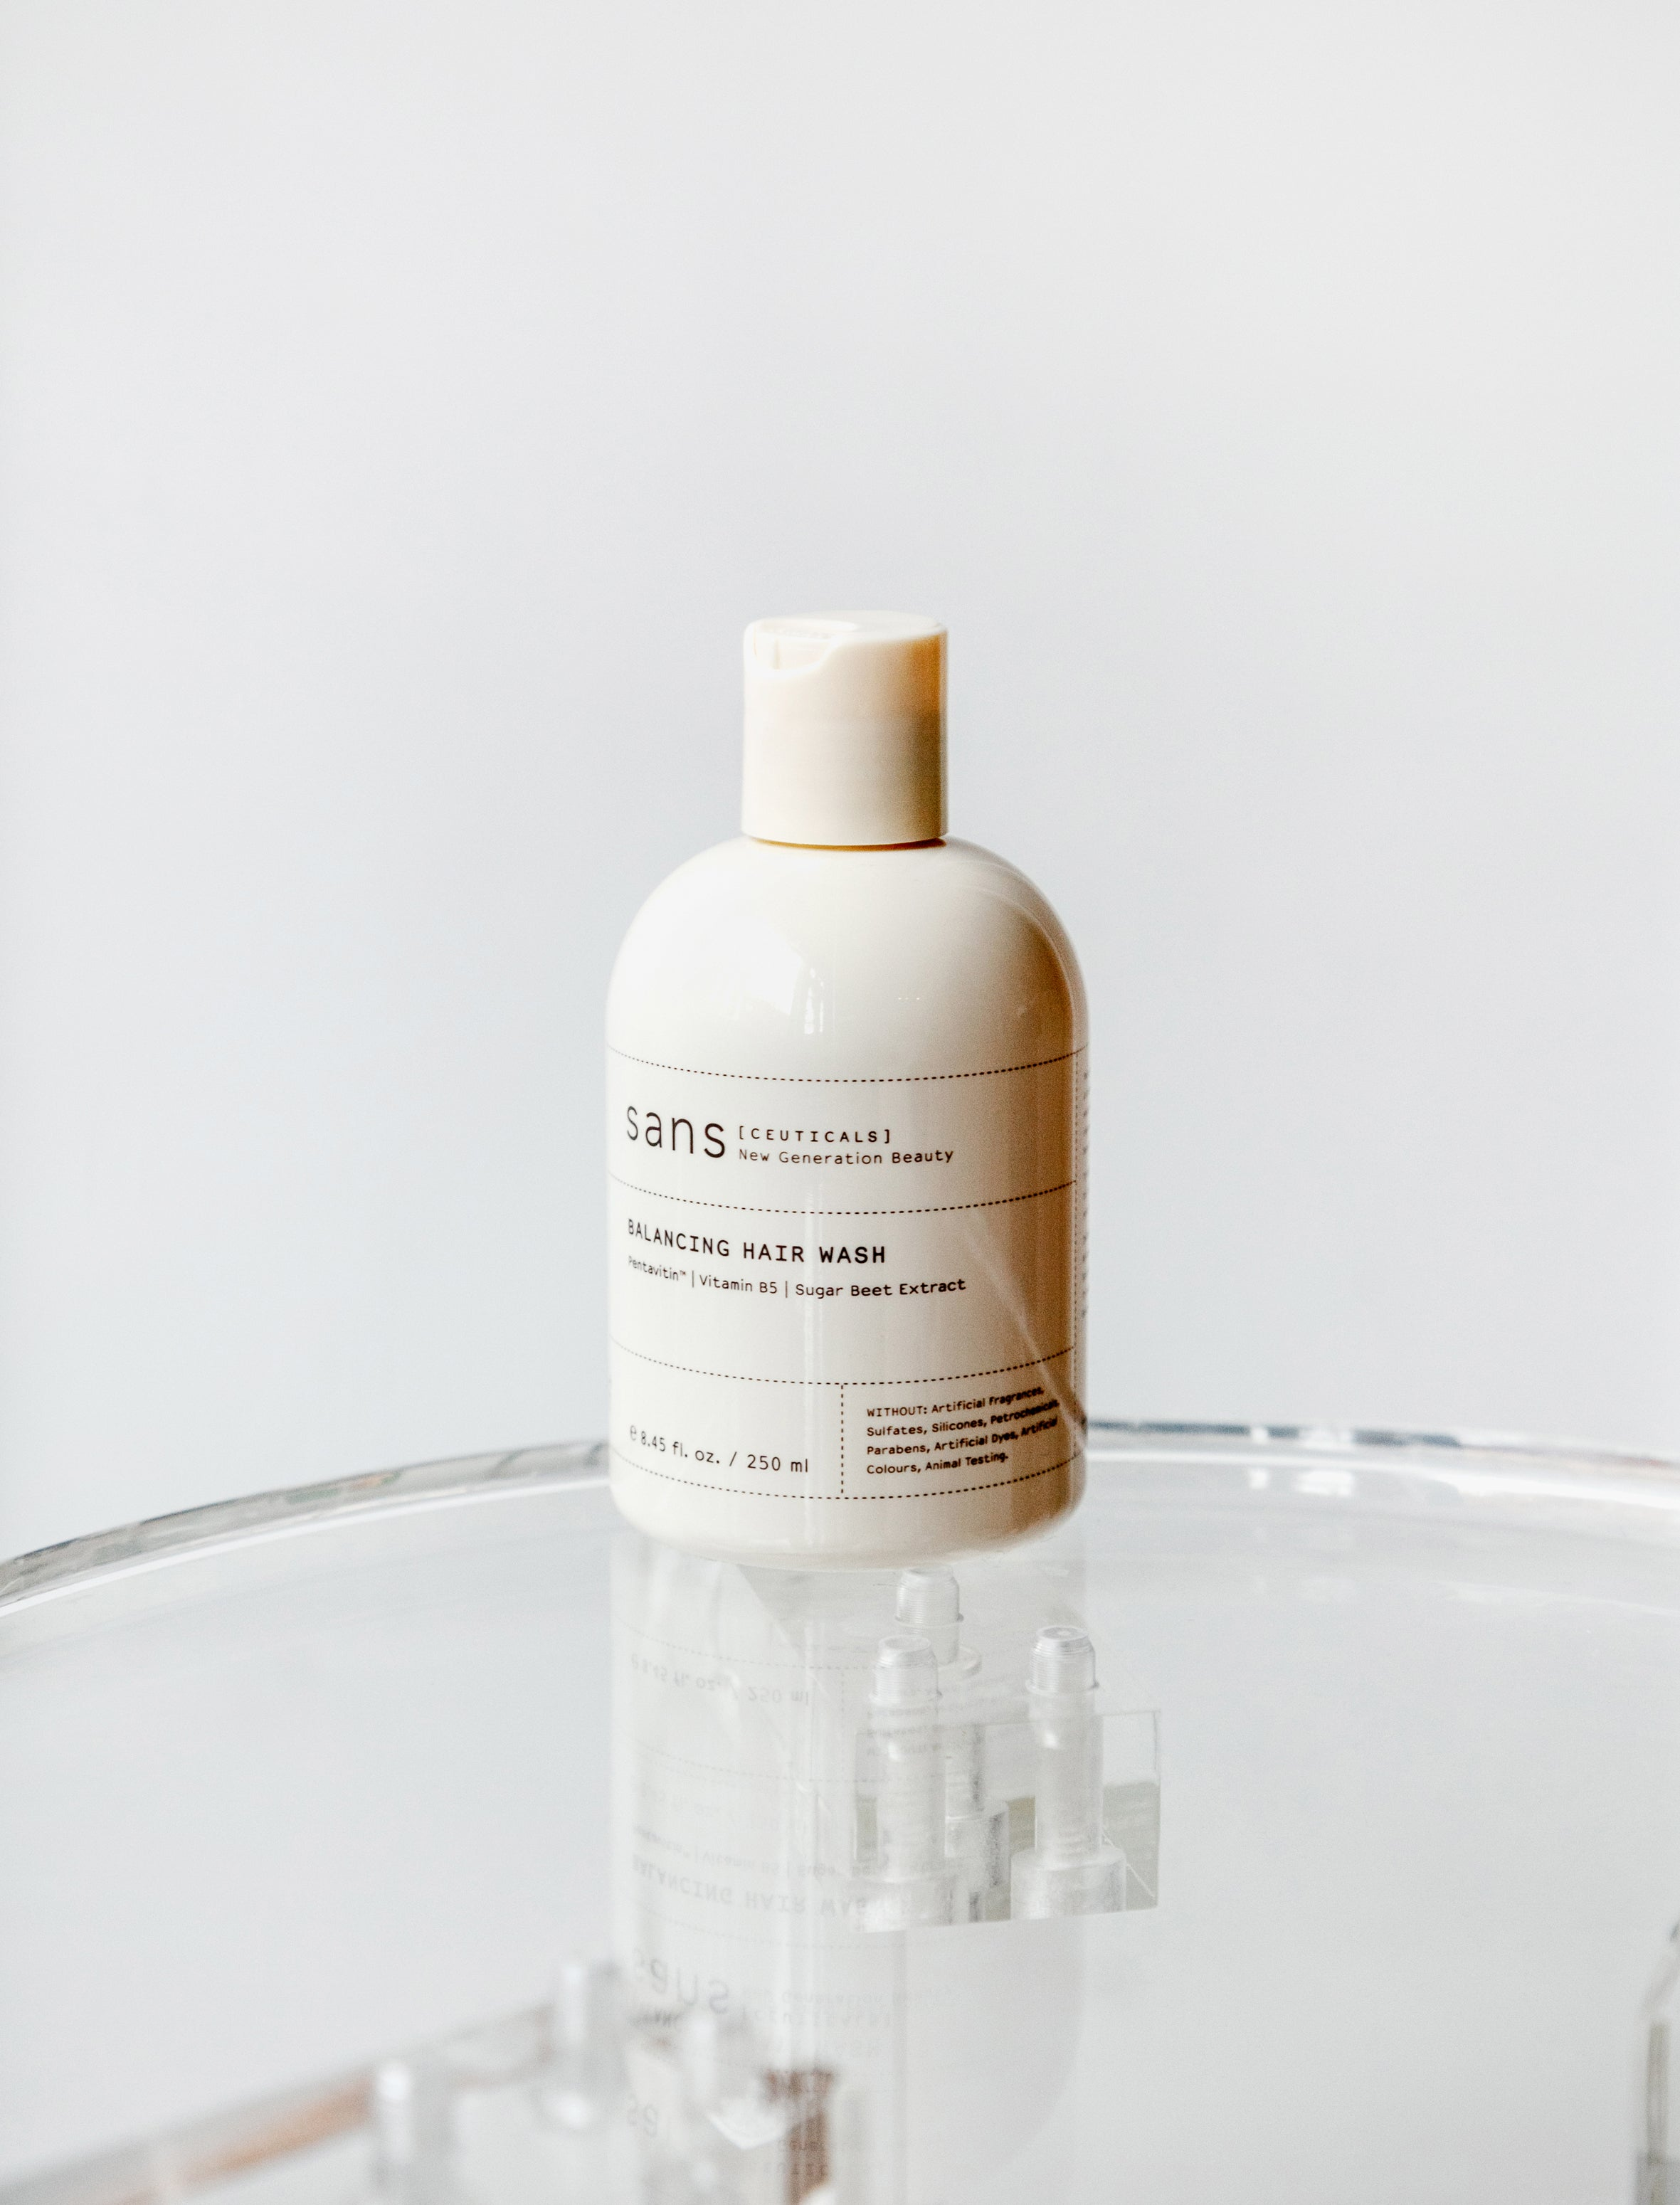 Sans Ceuticals Balancing Hair Wash